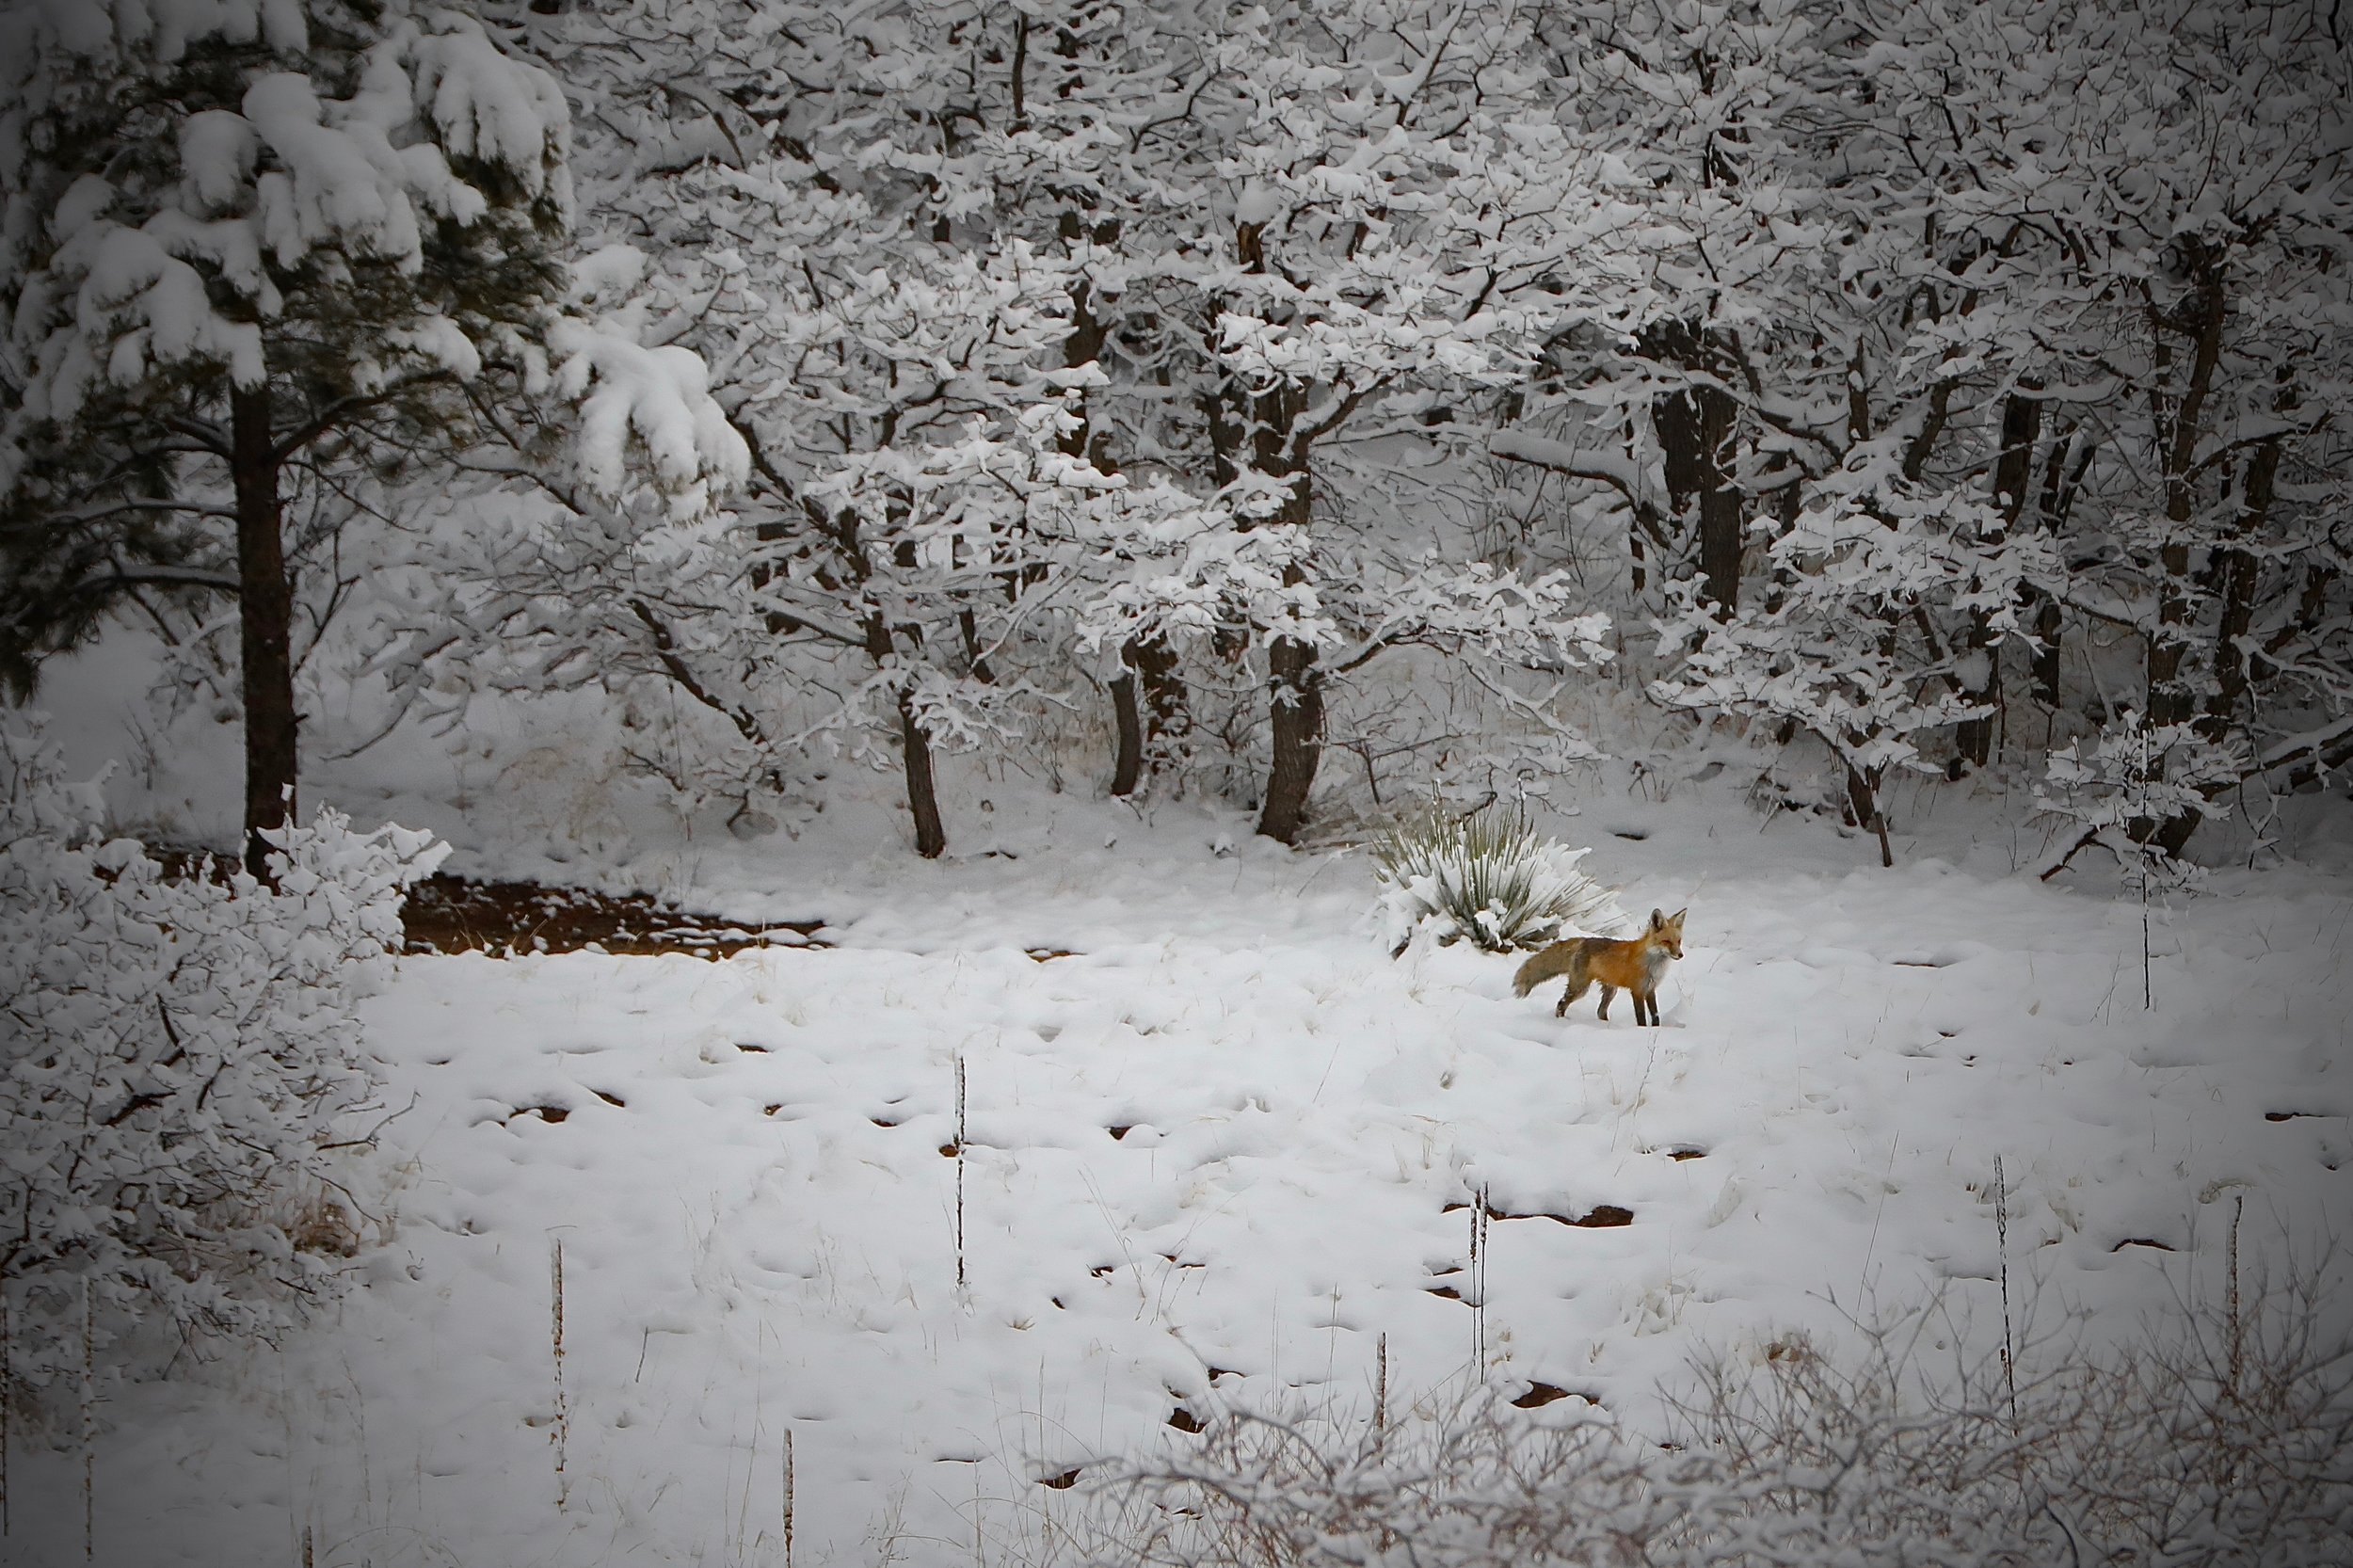 Fox after the Spring storm. Pike National Forest, about 1 mile from the house. Colorado, USA